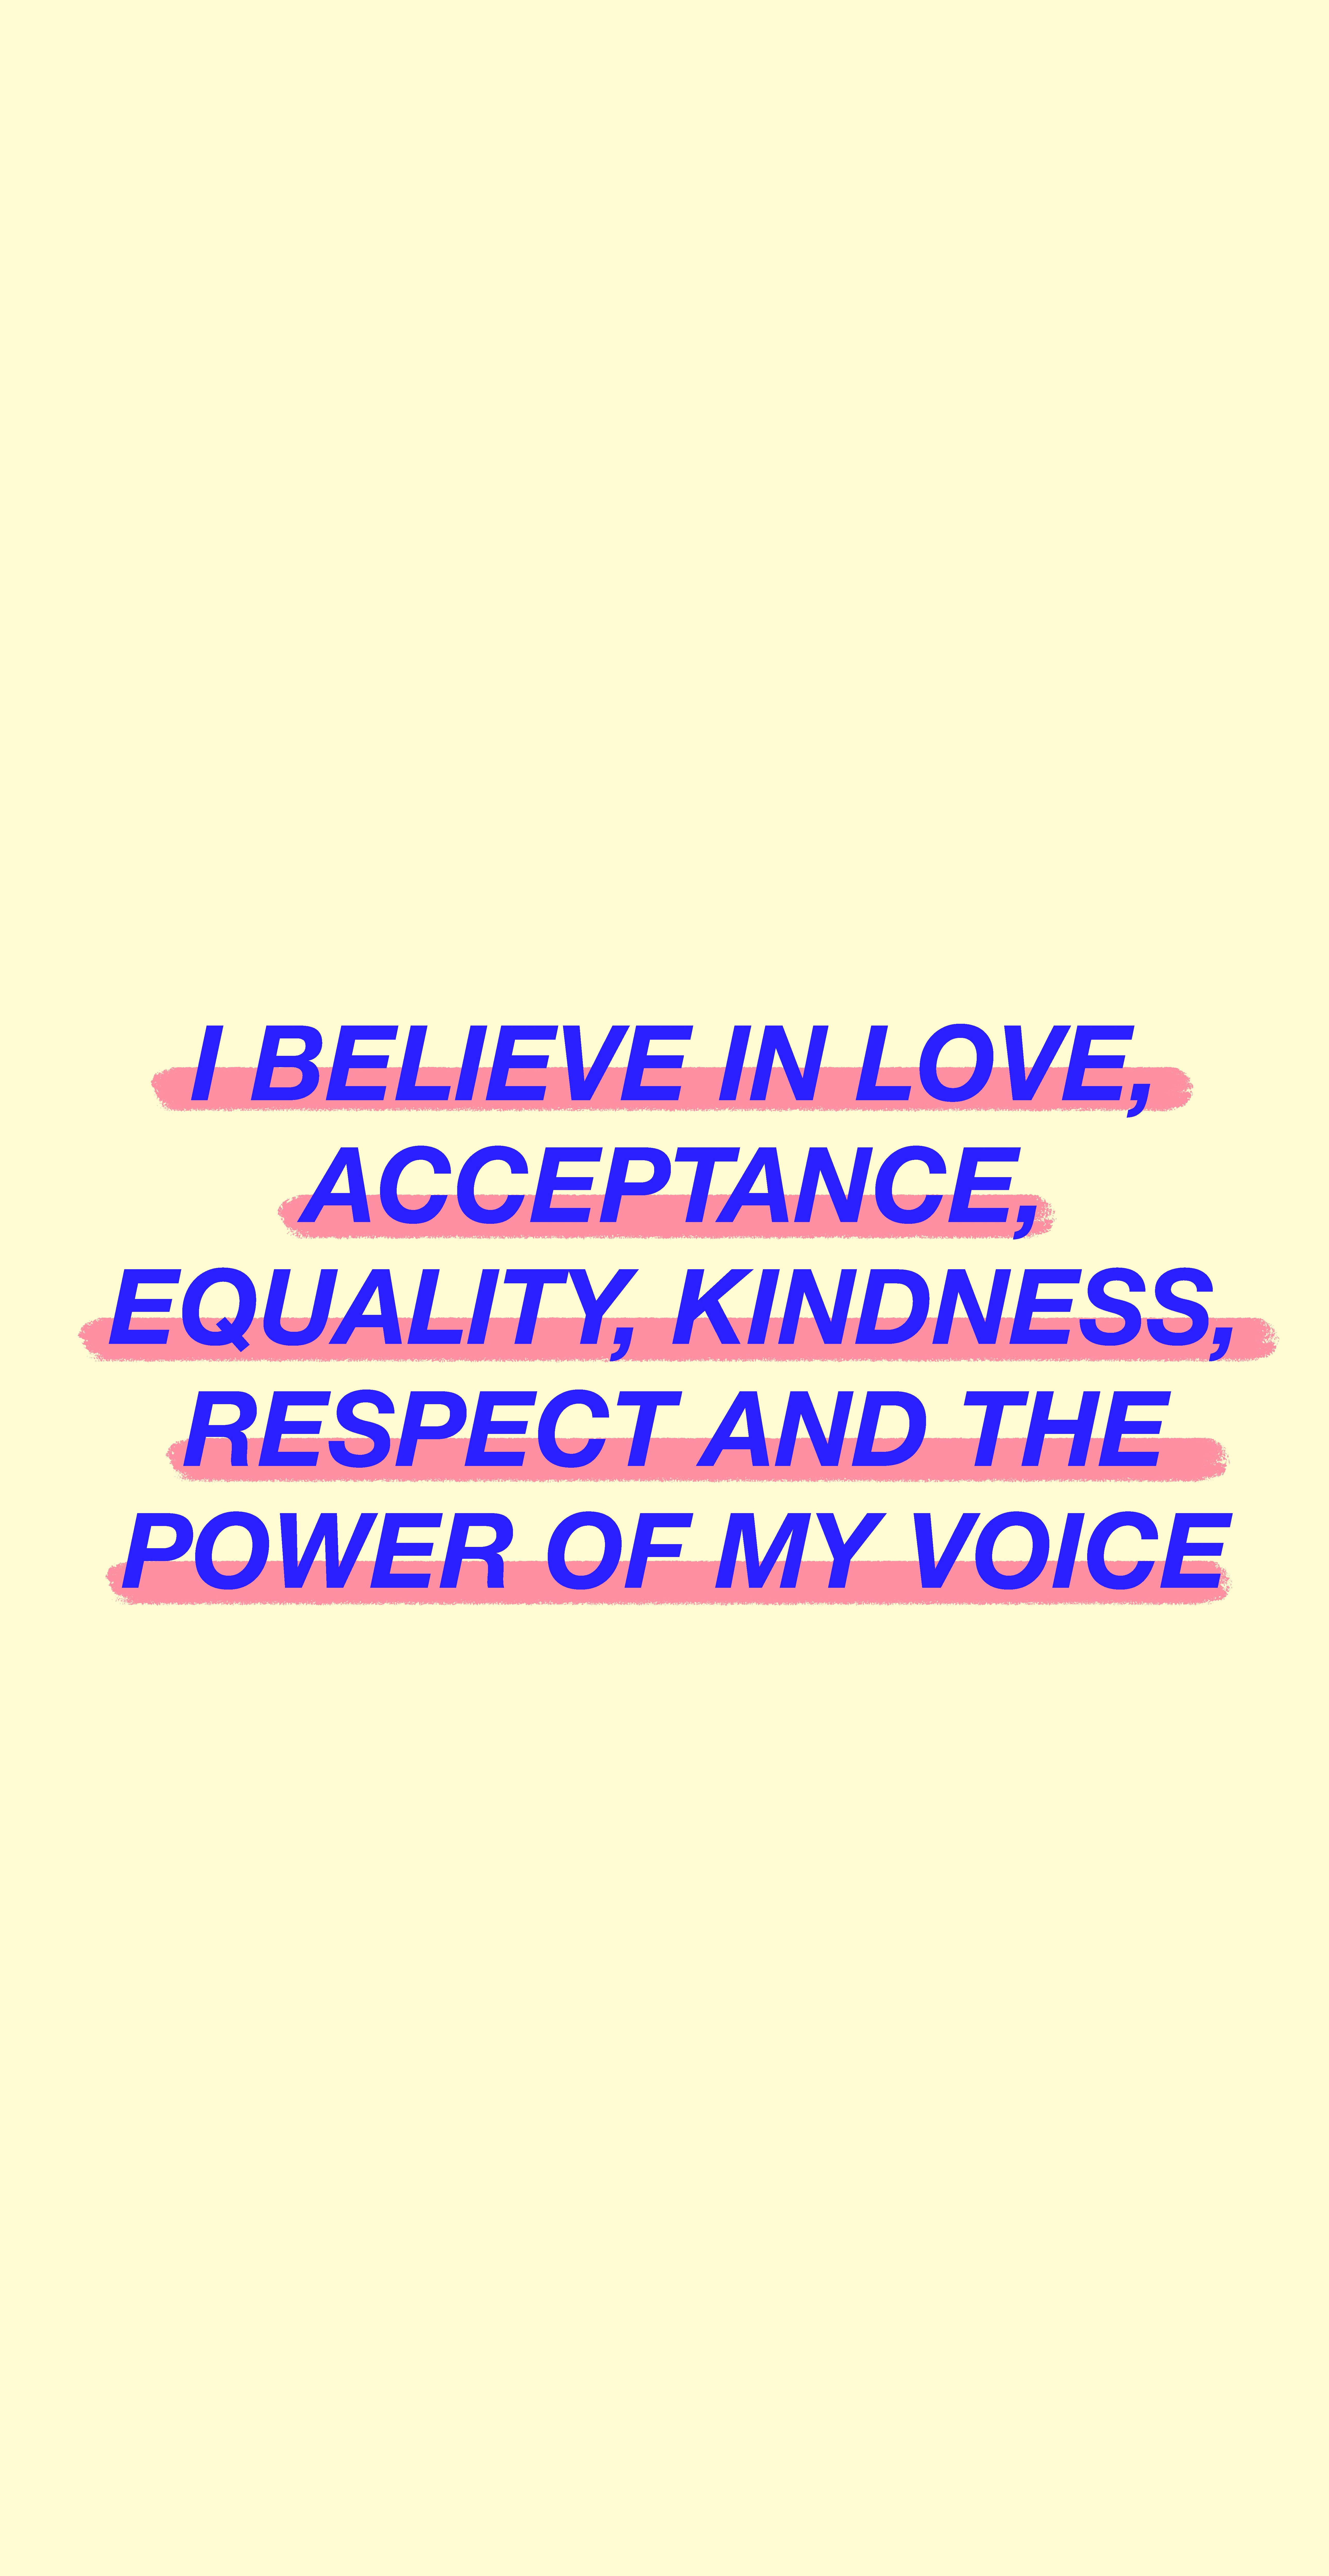 Pinterest Kinglarr22 Instagram Lauragarciaxoxo Https Www Instagram Com Lauragarciaxoxo Feminist Quotes Equality Words